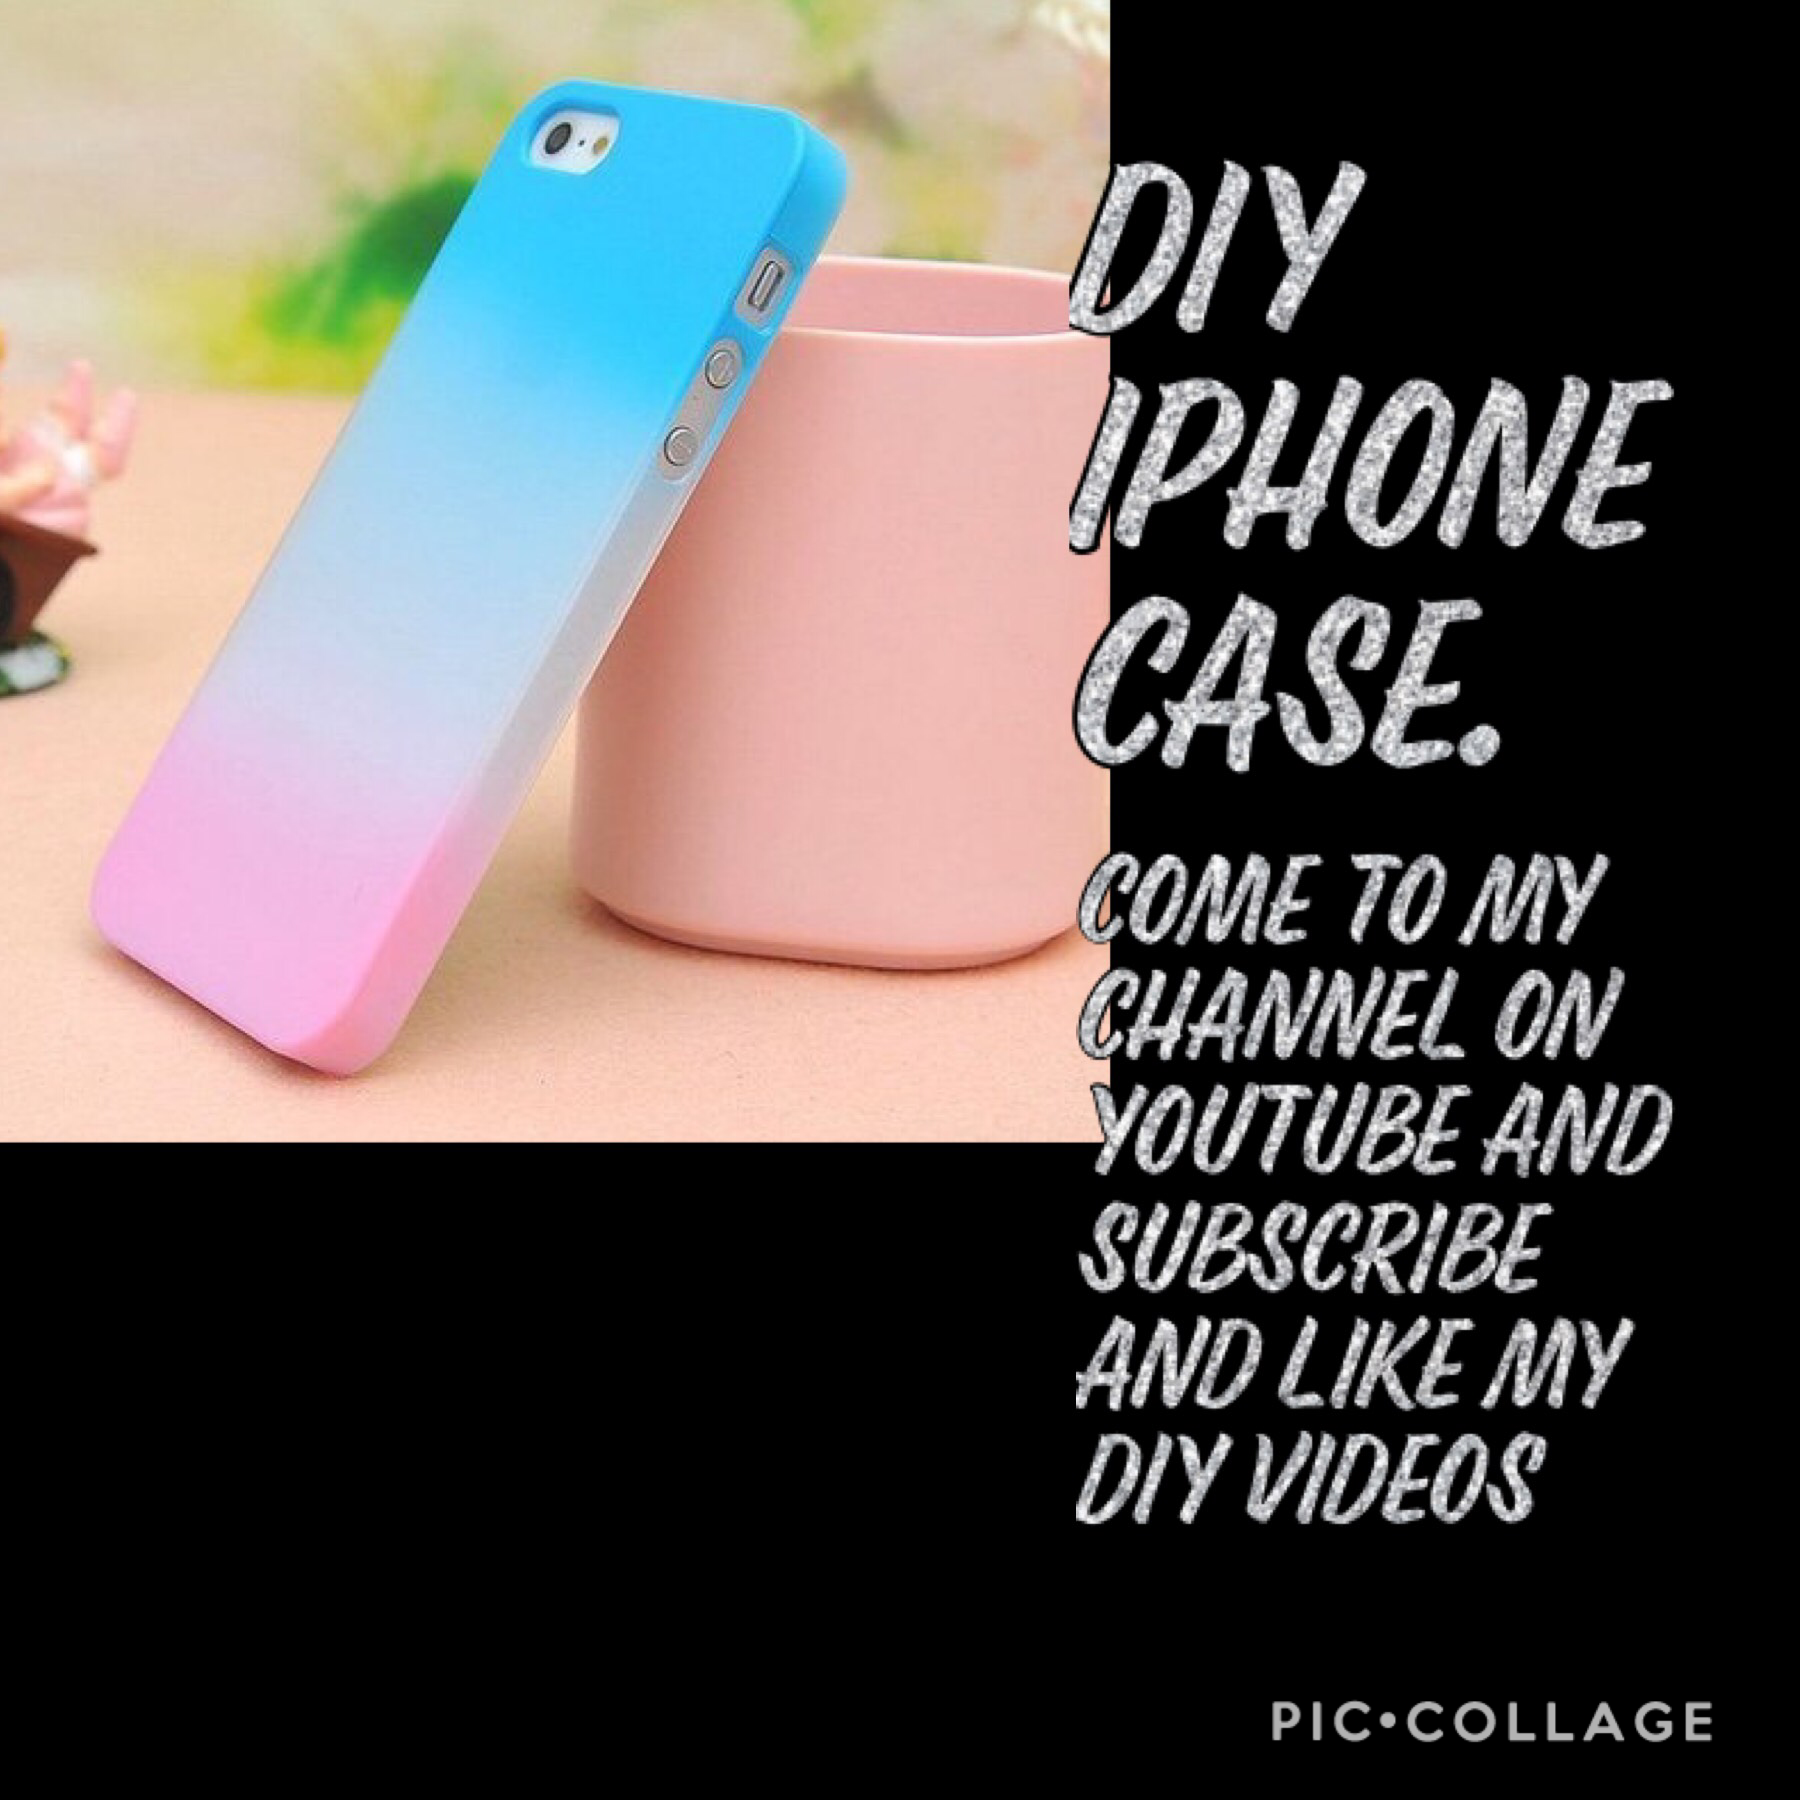 SUBSCRIBE TO MY DIY CHANNEL AND LEARN HOW TO DO DIYS